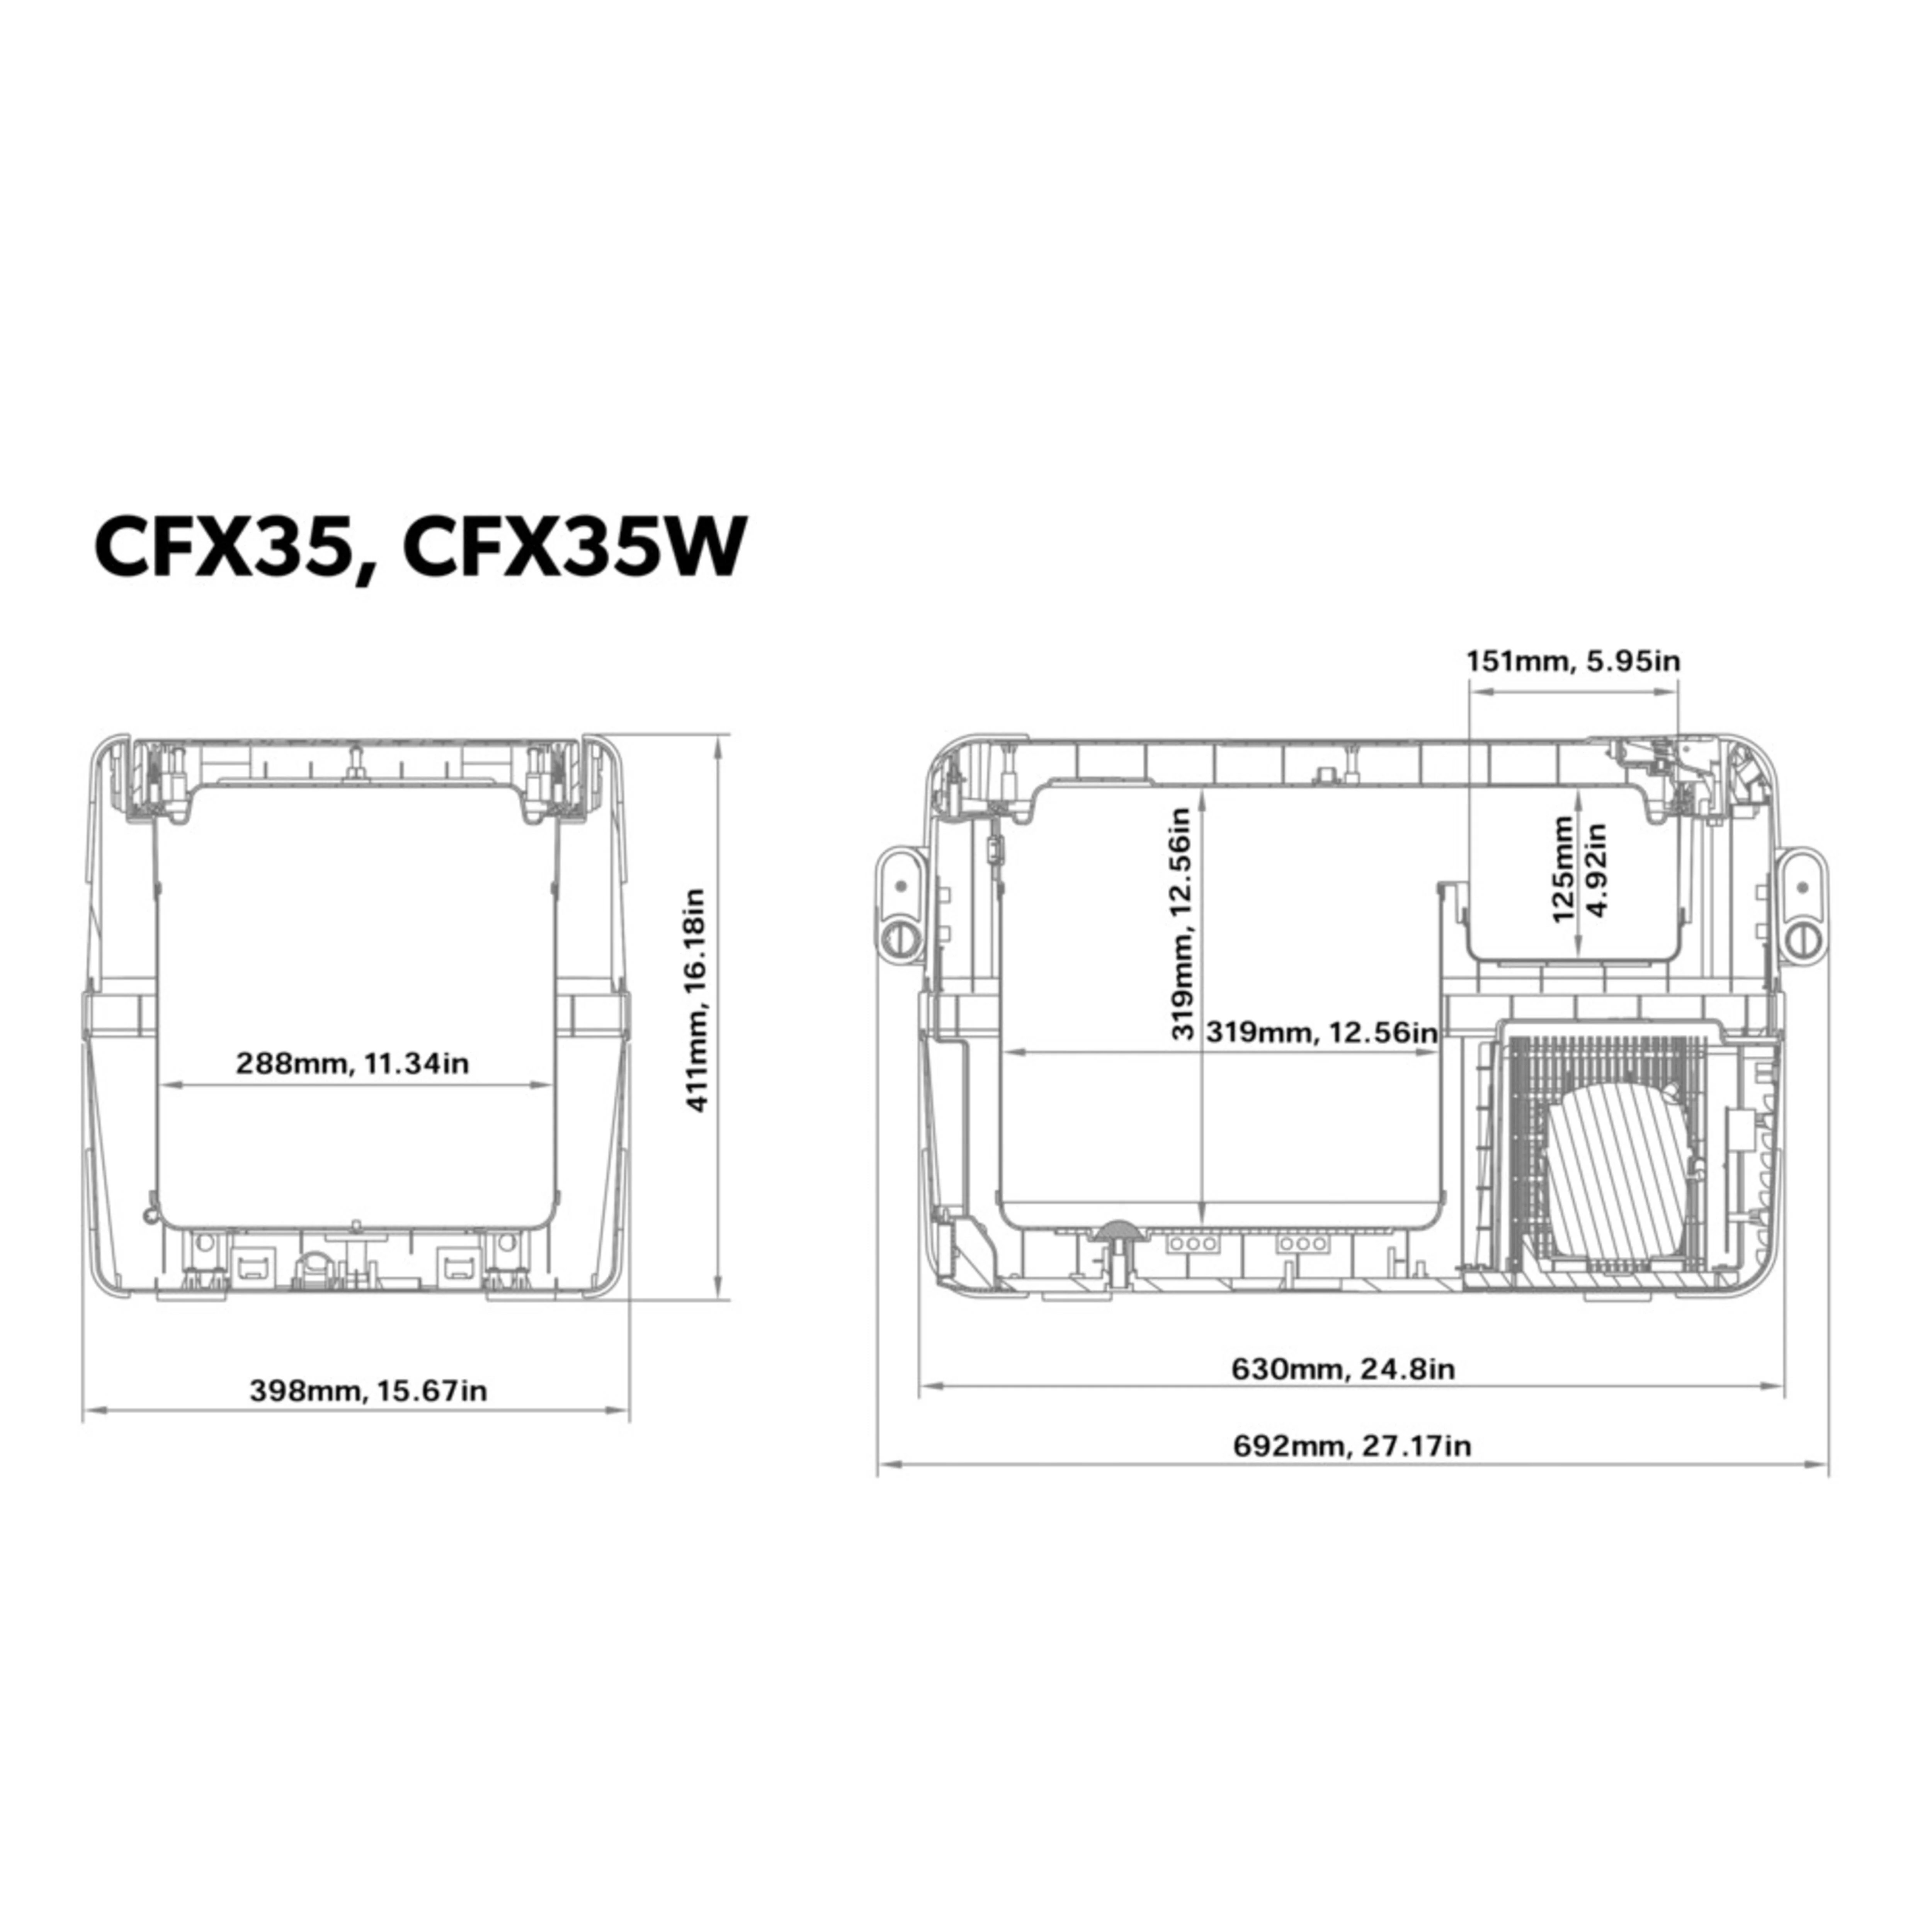 small resolution of cfx 35w dimensions